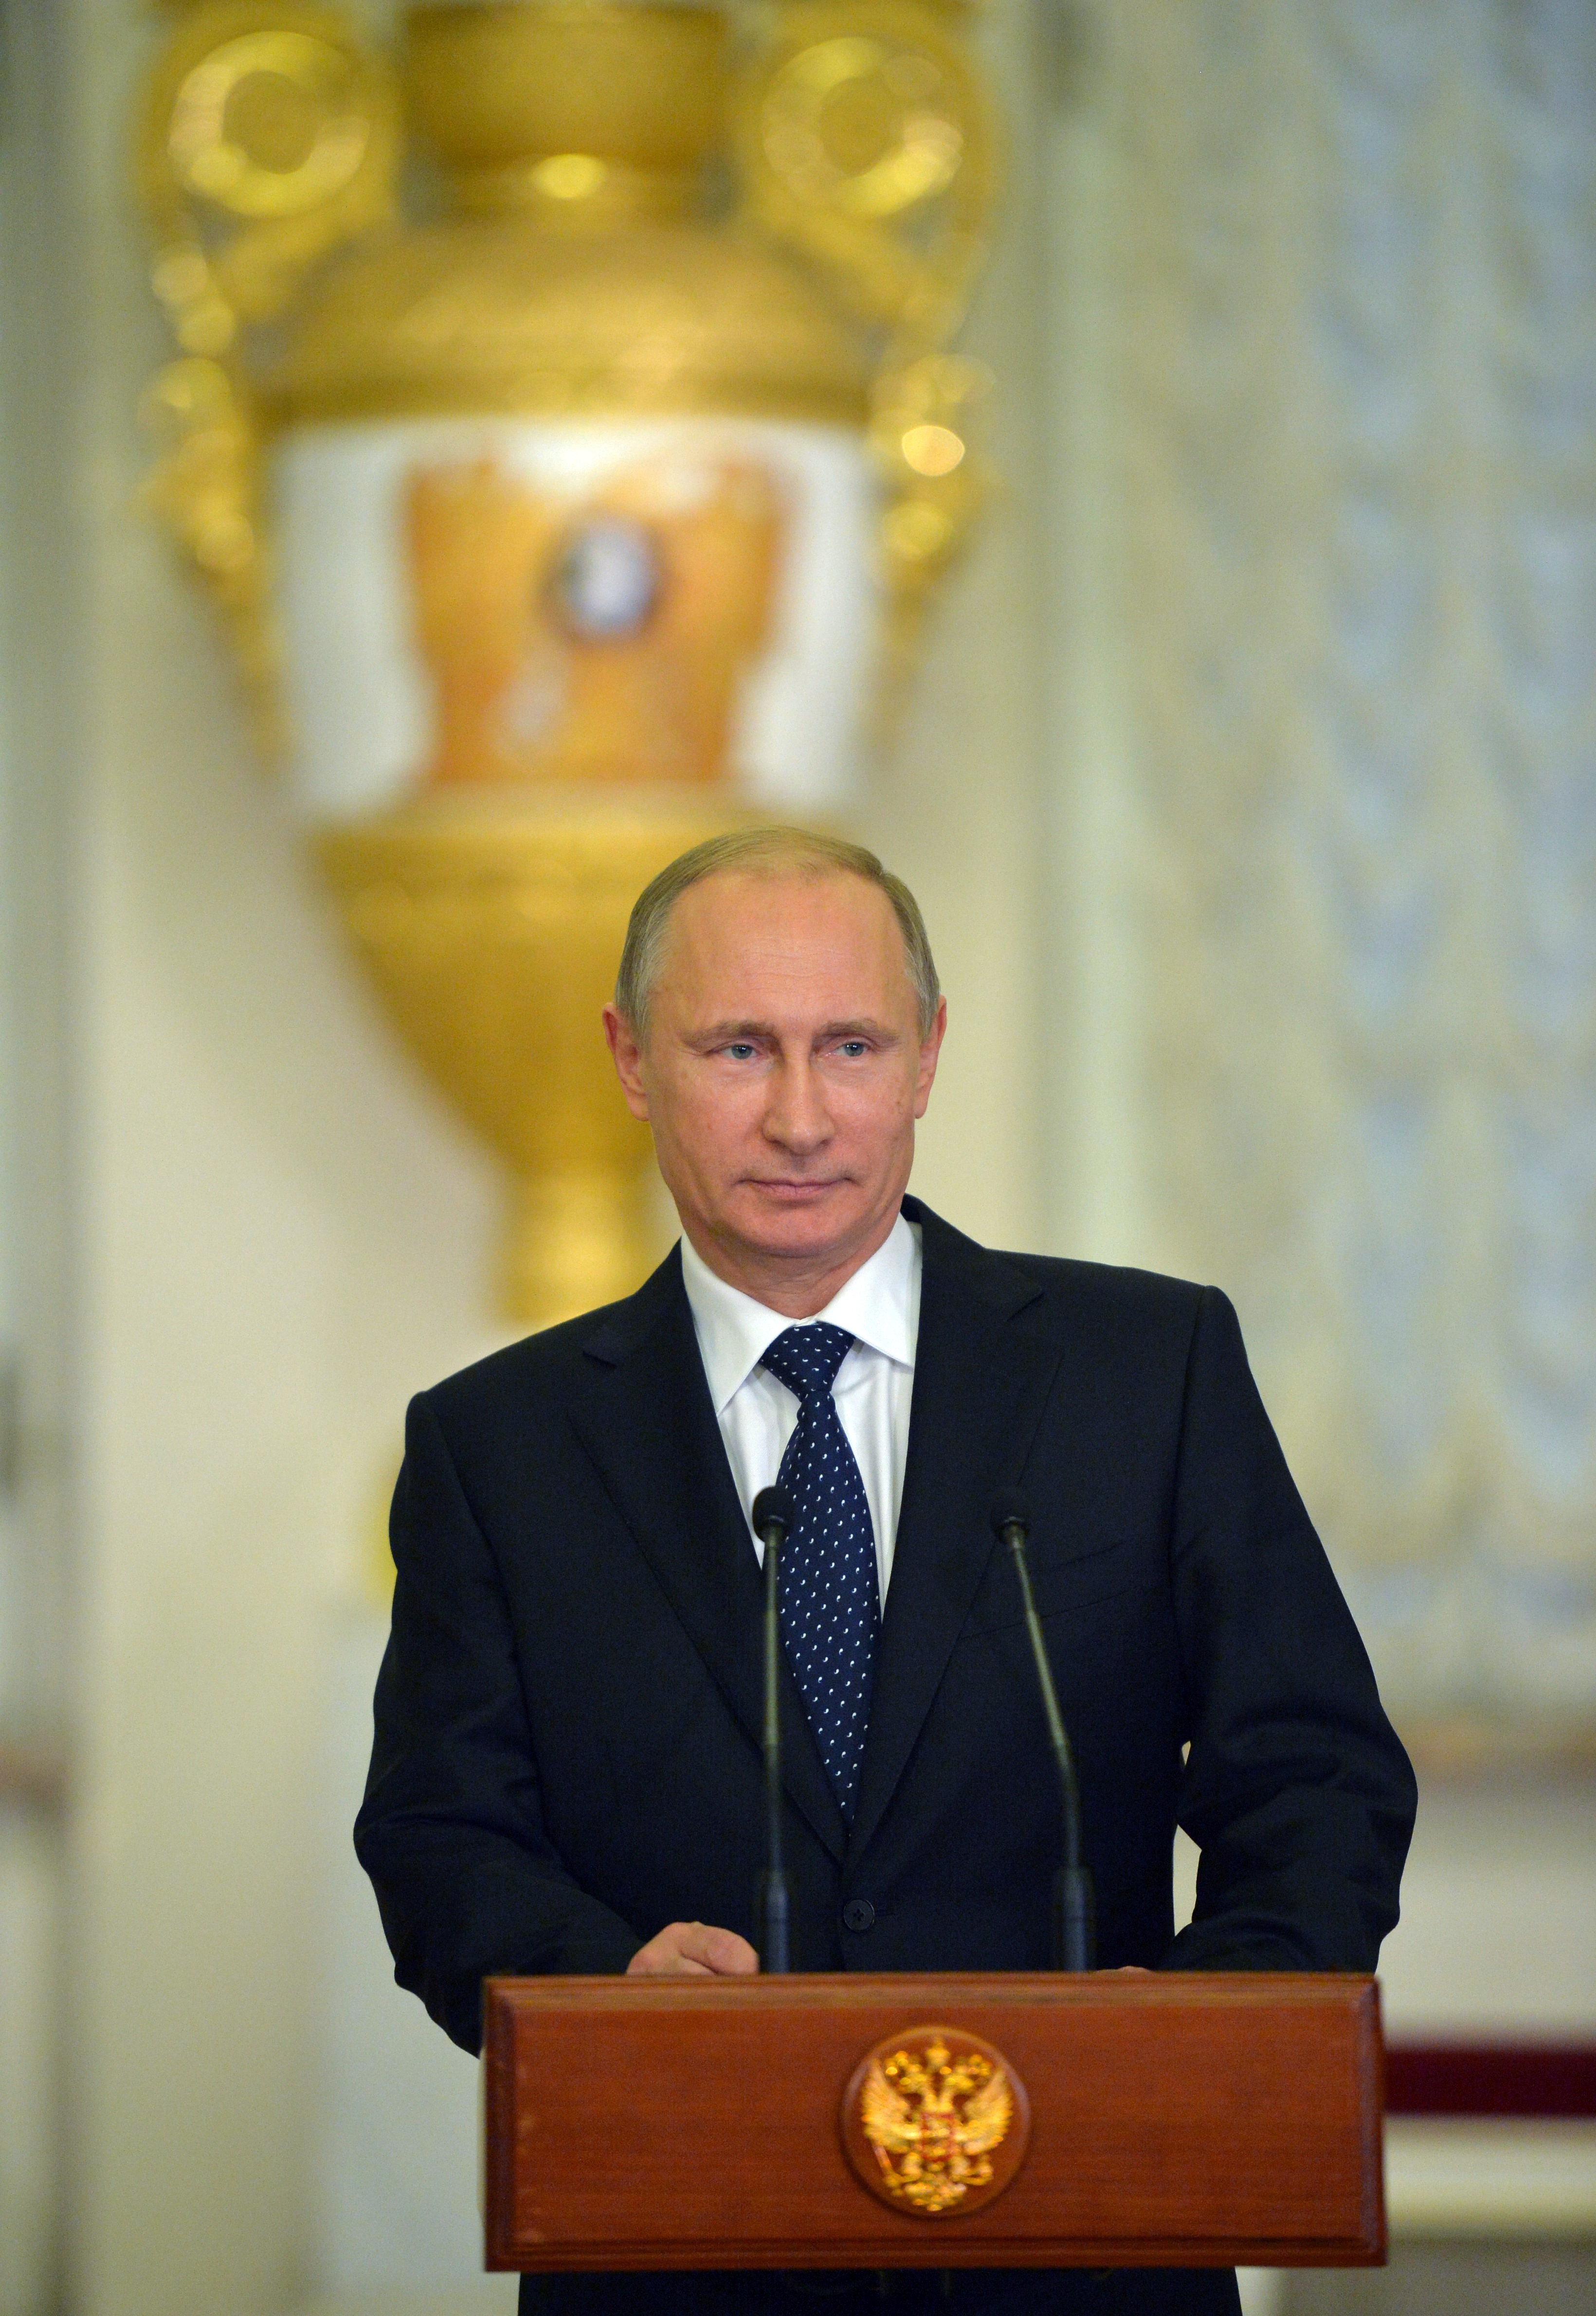 U.S.A. researchers report plagiarism in Putin's dissertation